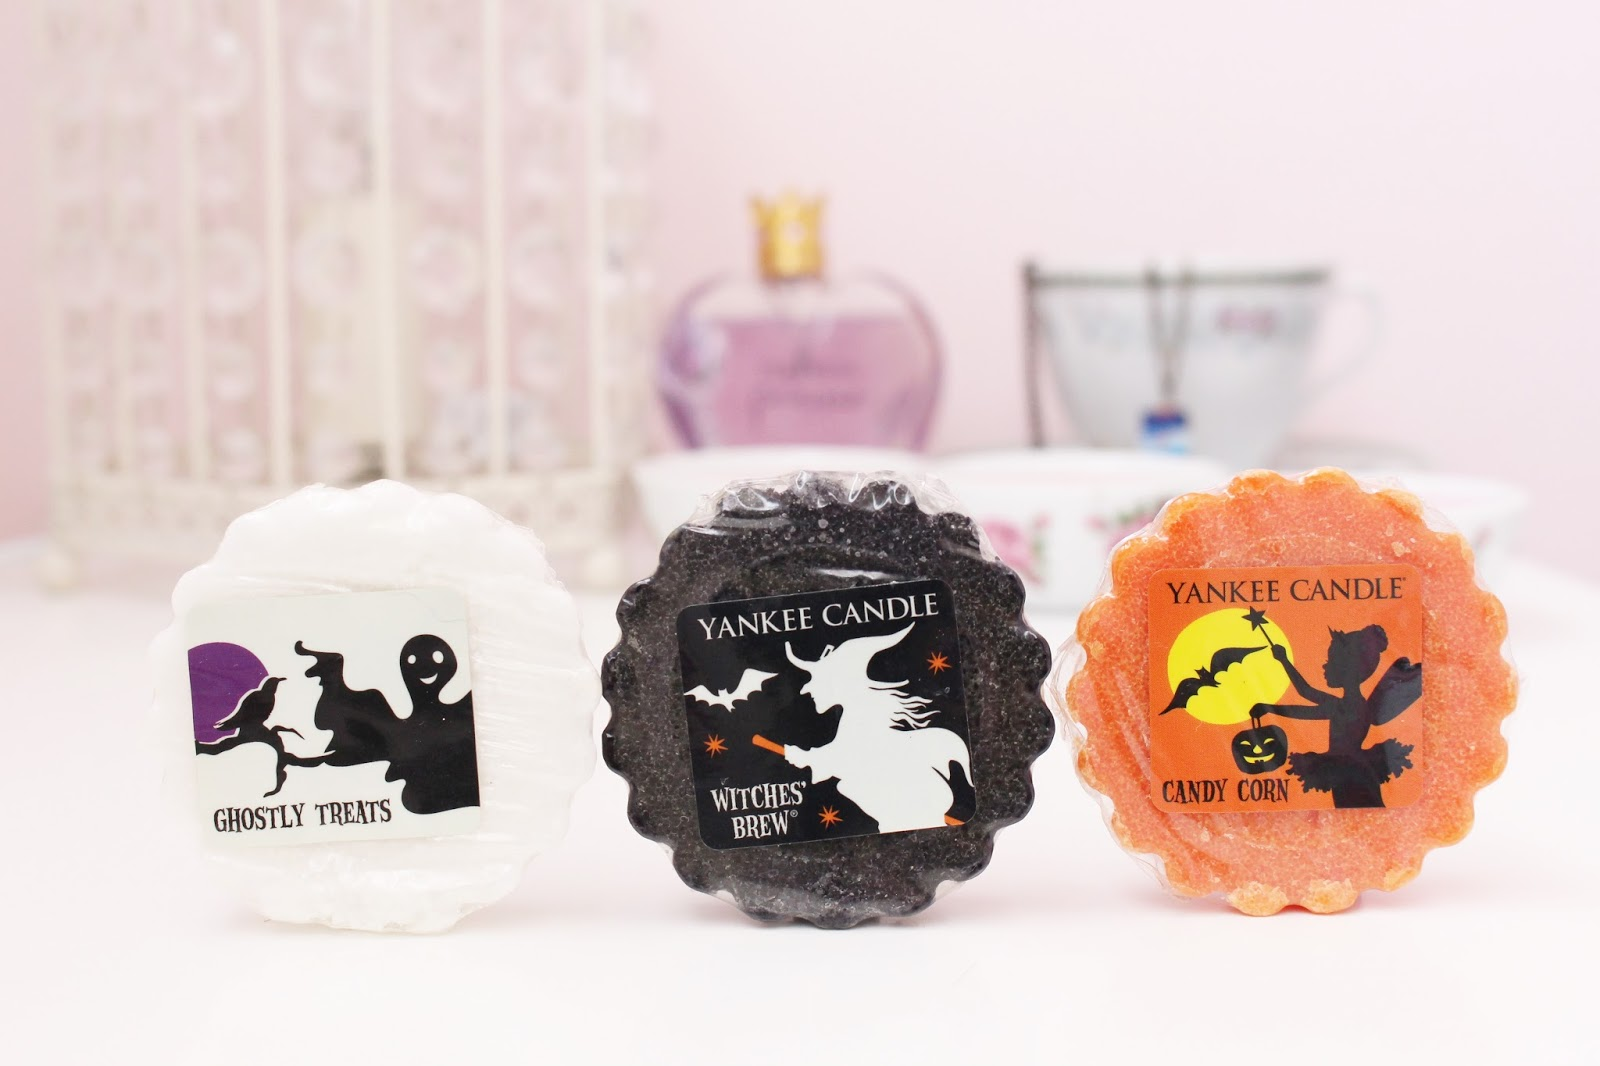 Halloween Yankee Candle Review - Ghostly Treats, Witches Brew and Candy Corn